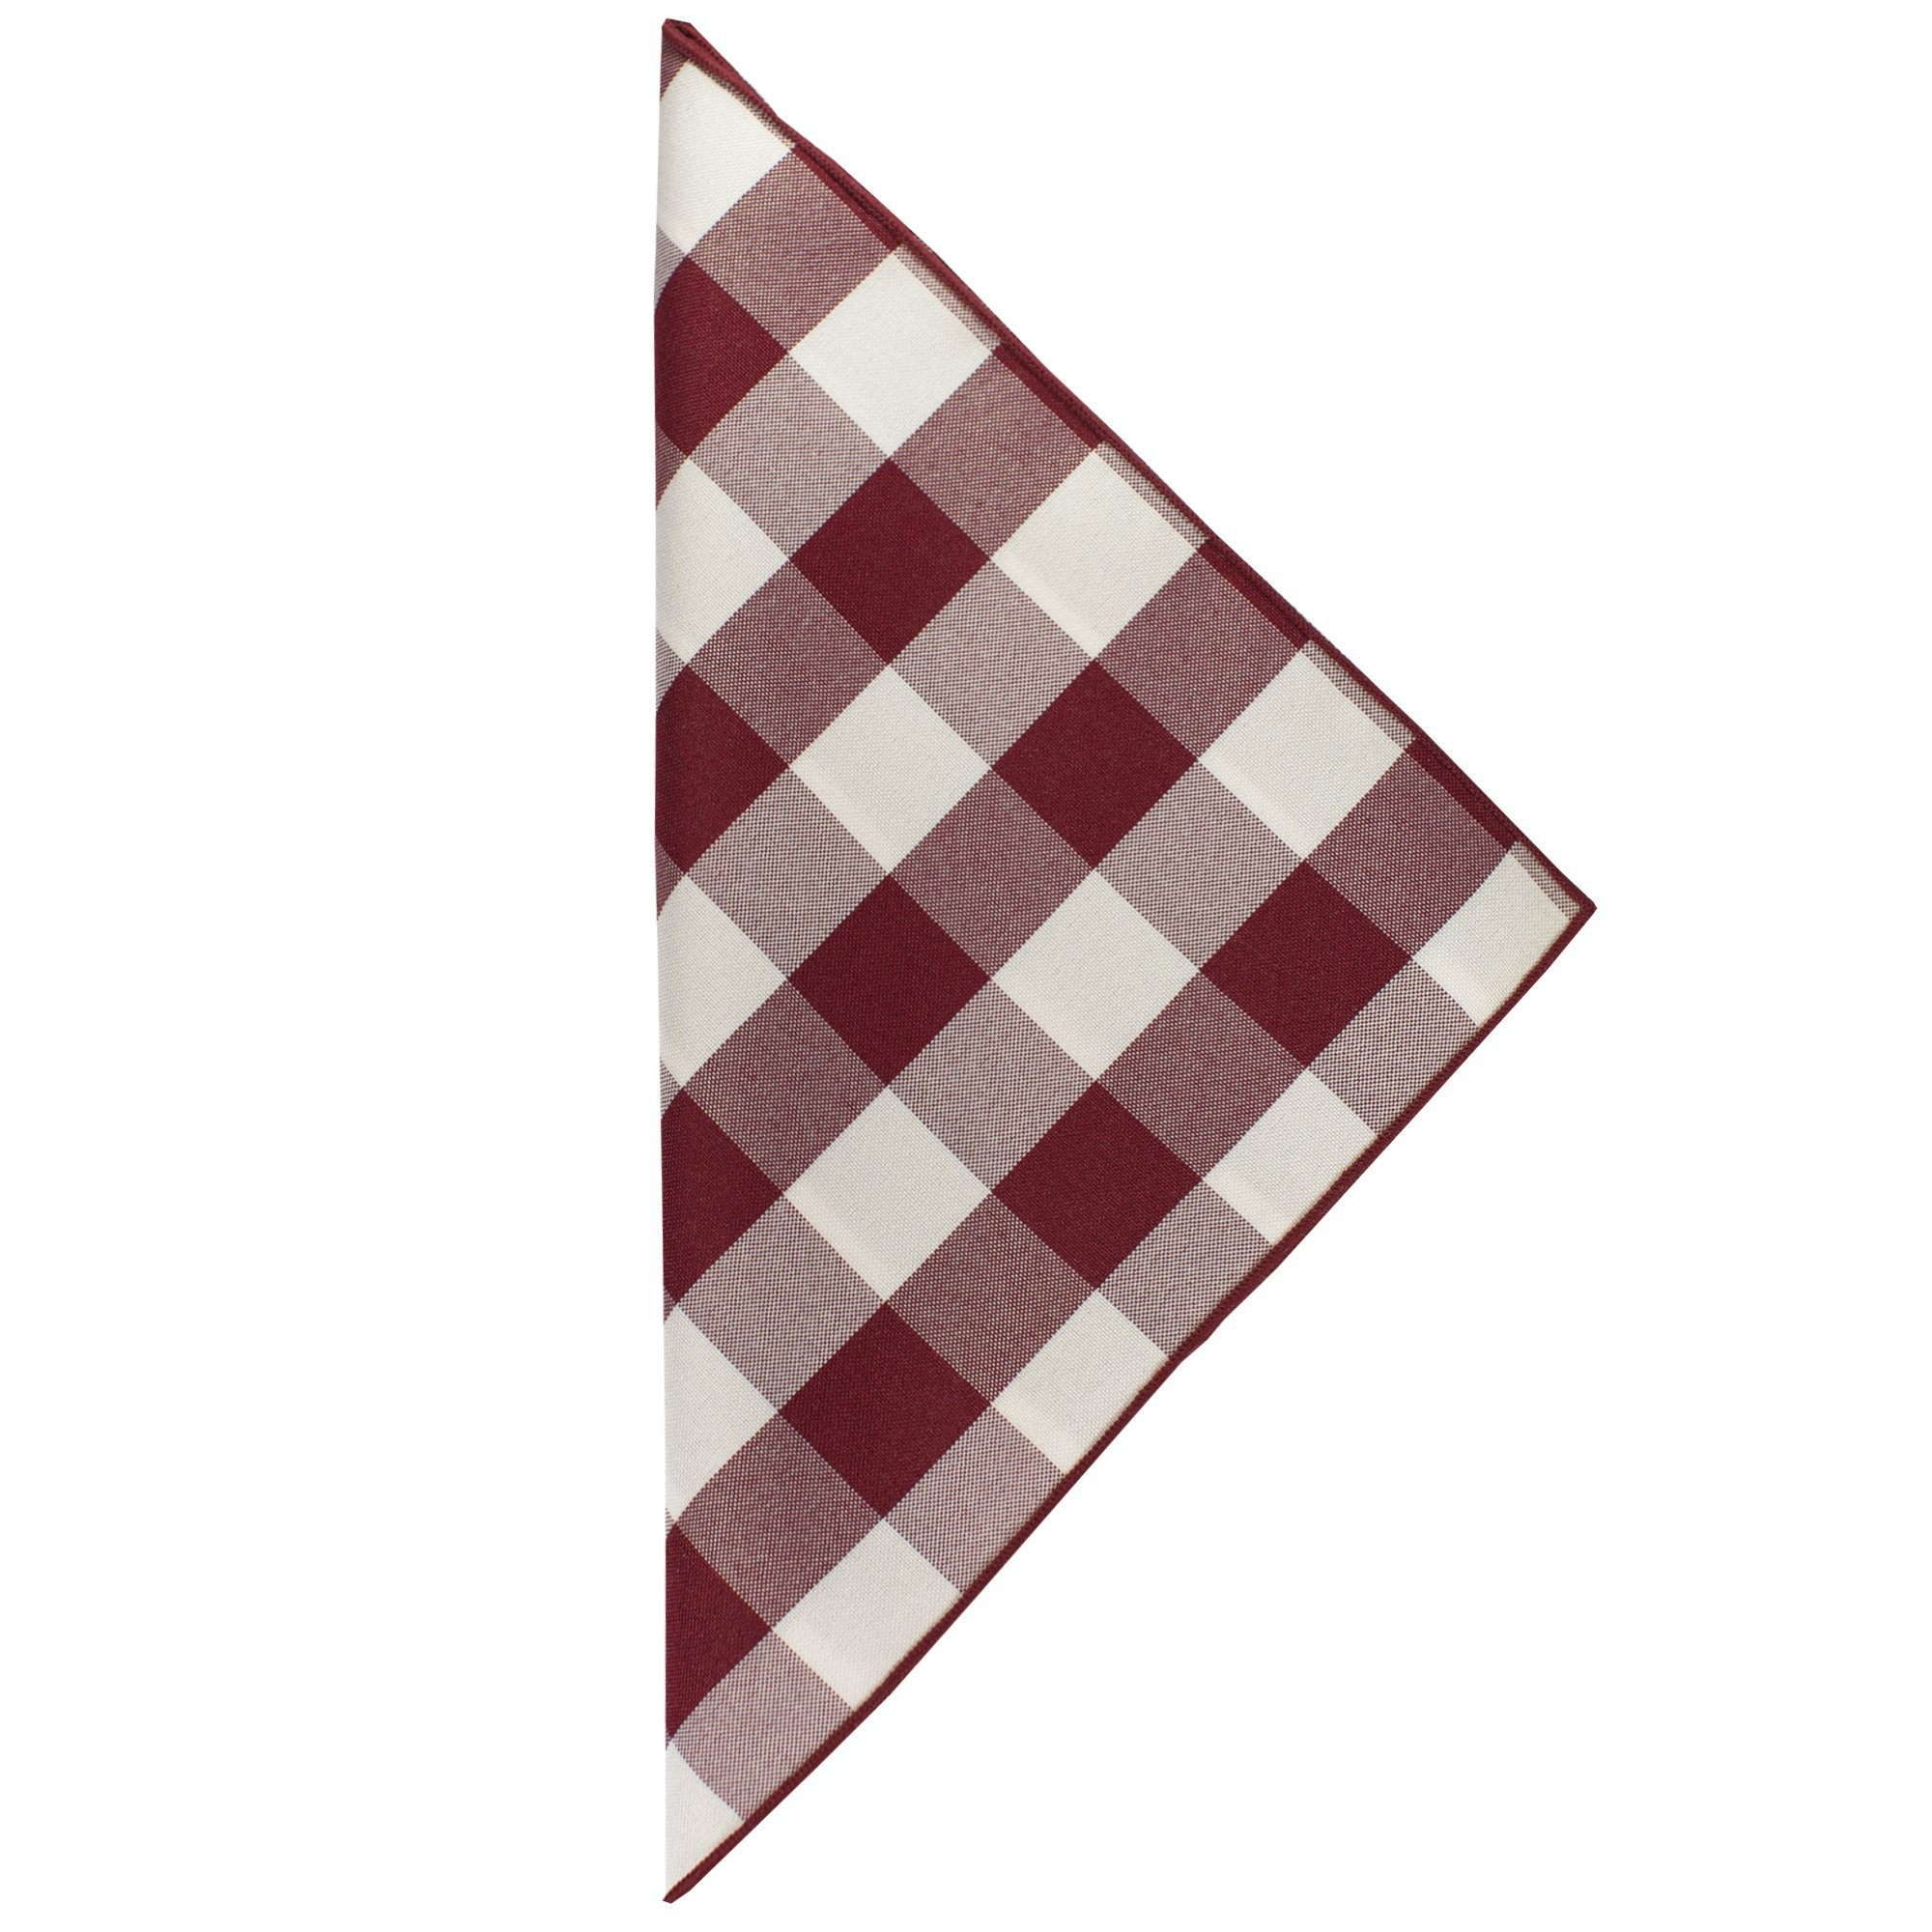 Ultimate Textile -10 Dozen- 10 x 10-Inch Polyester Checkered Cloth Cocktail Napkins, Burgundy and White